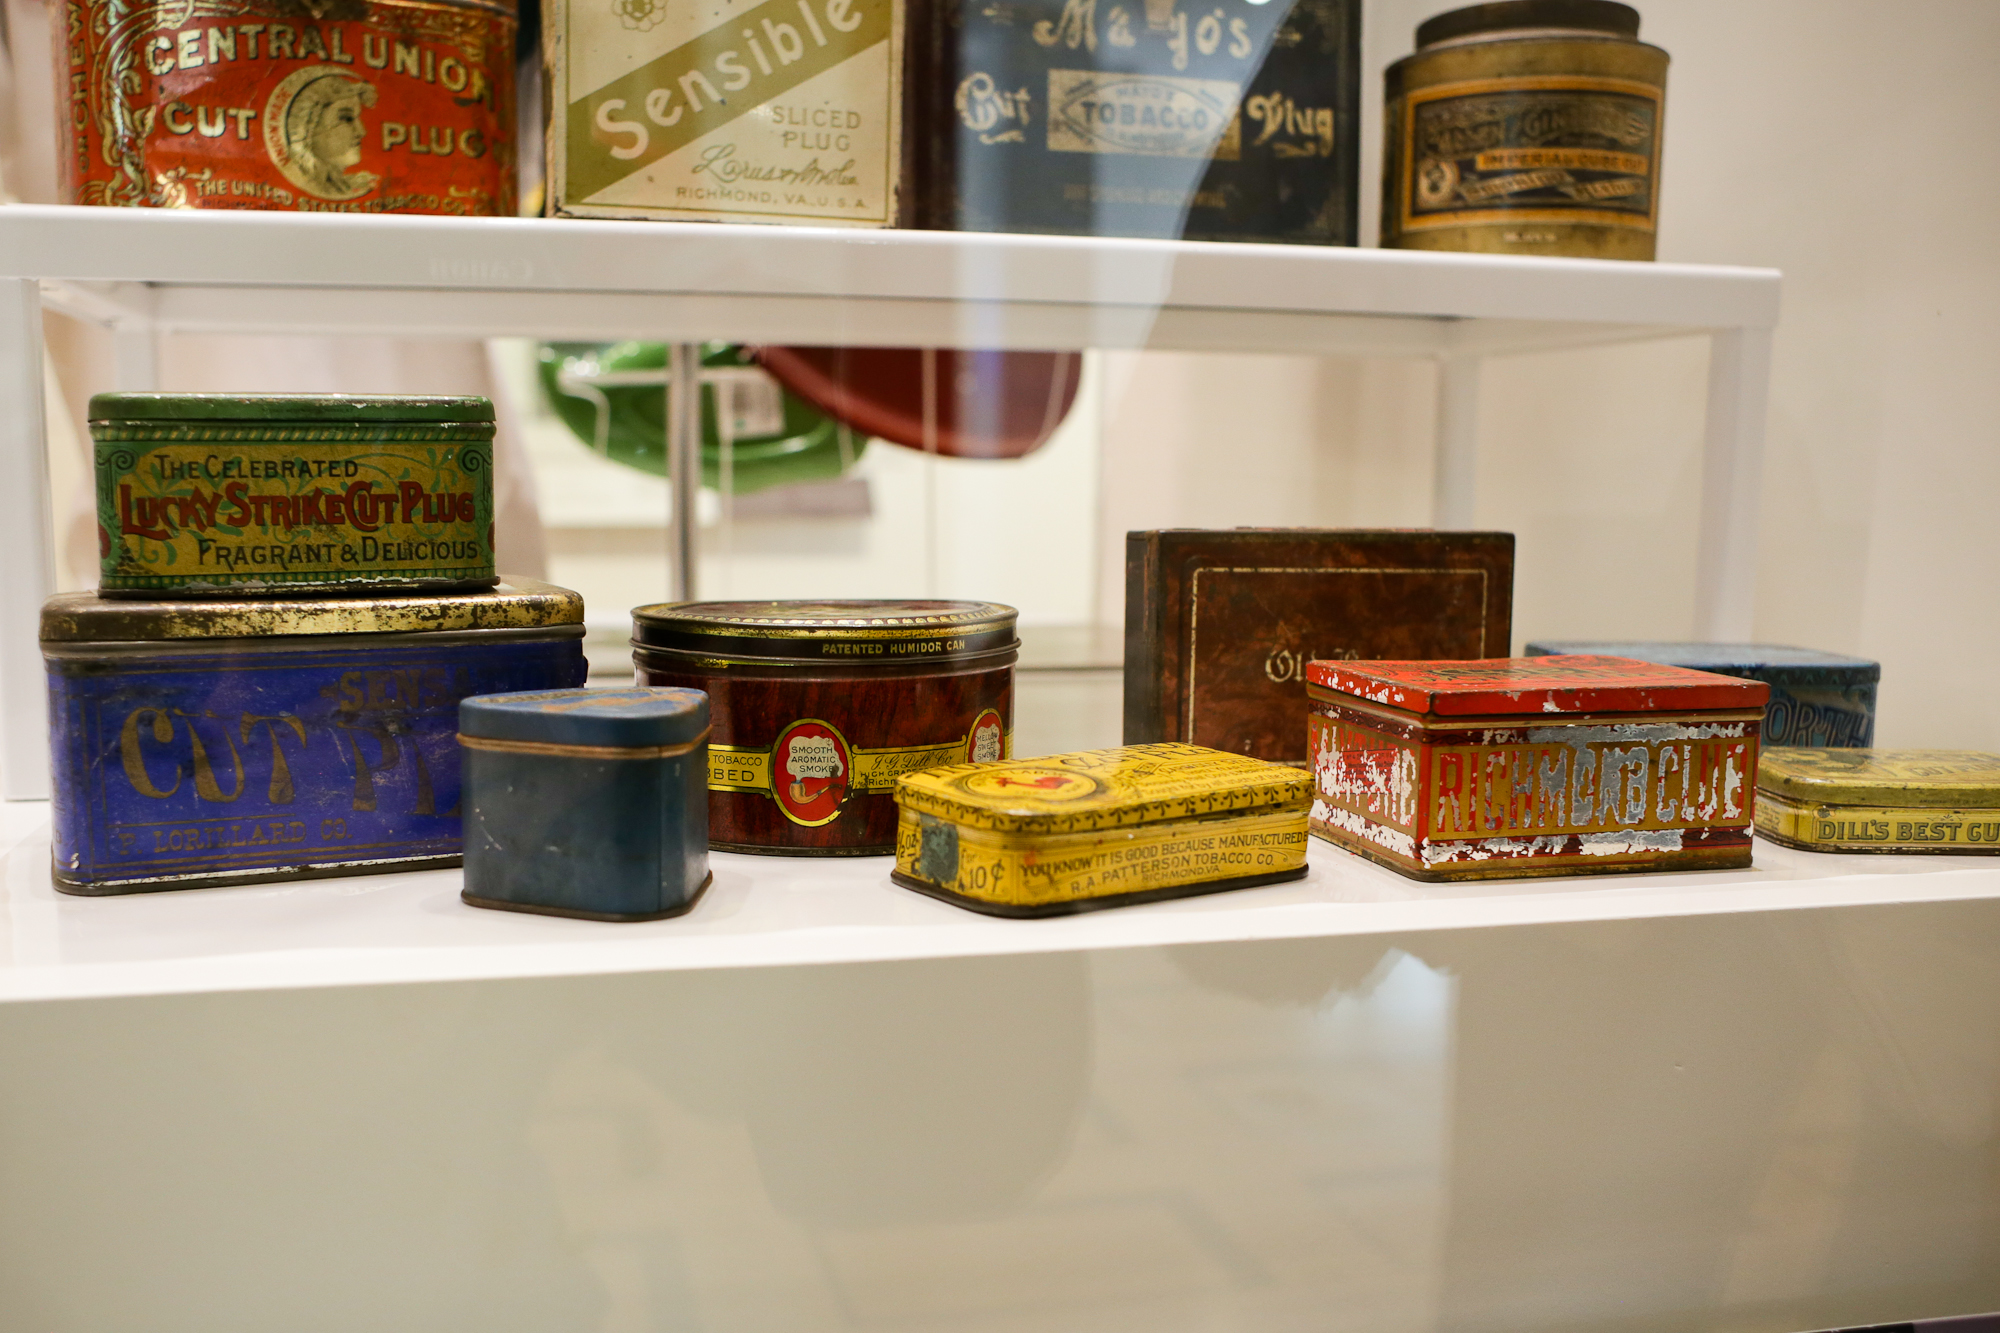 Richmond has an extensive history in the tobacco industry. I love how intricate all of these tobacco tins are.